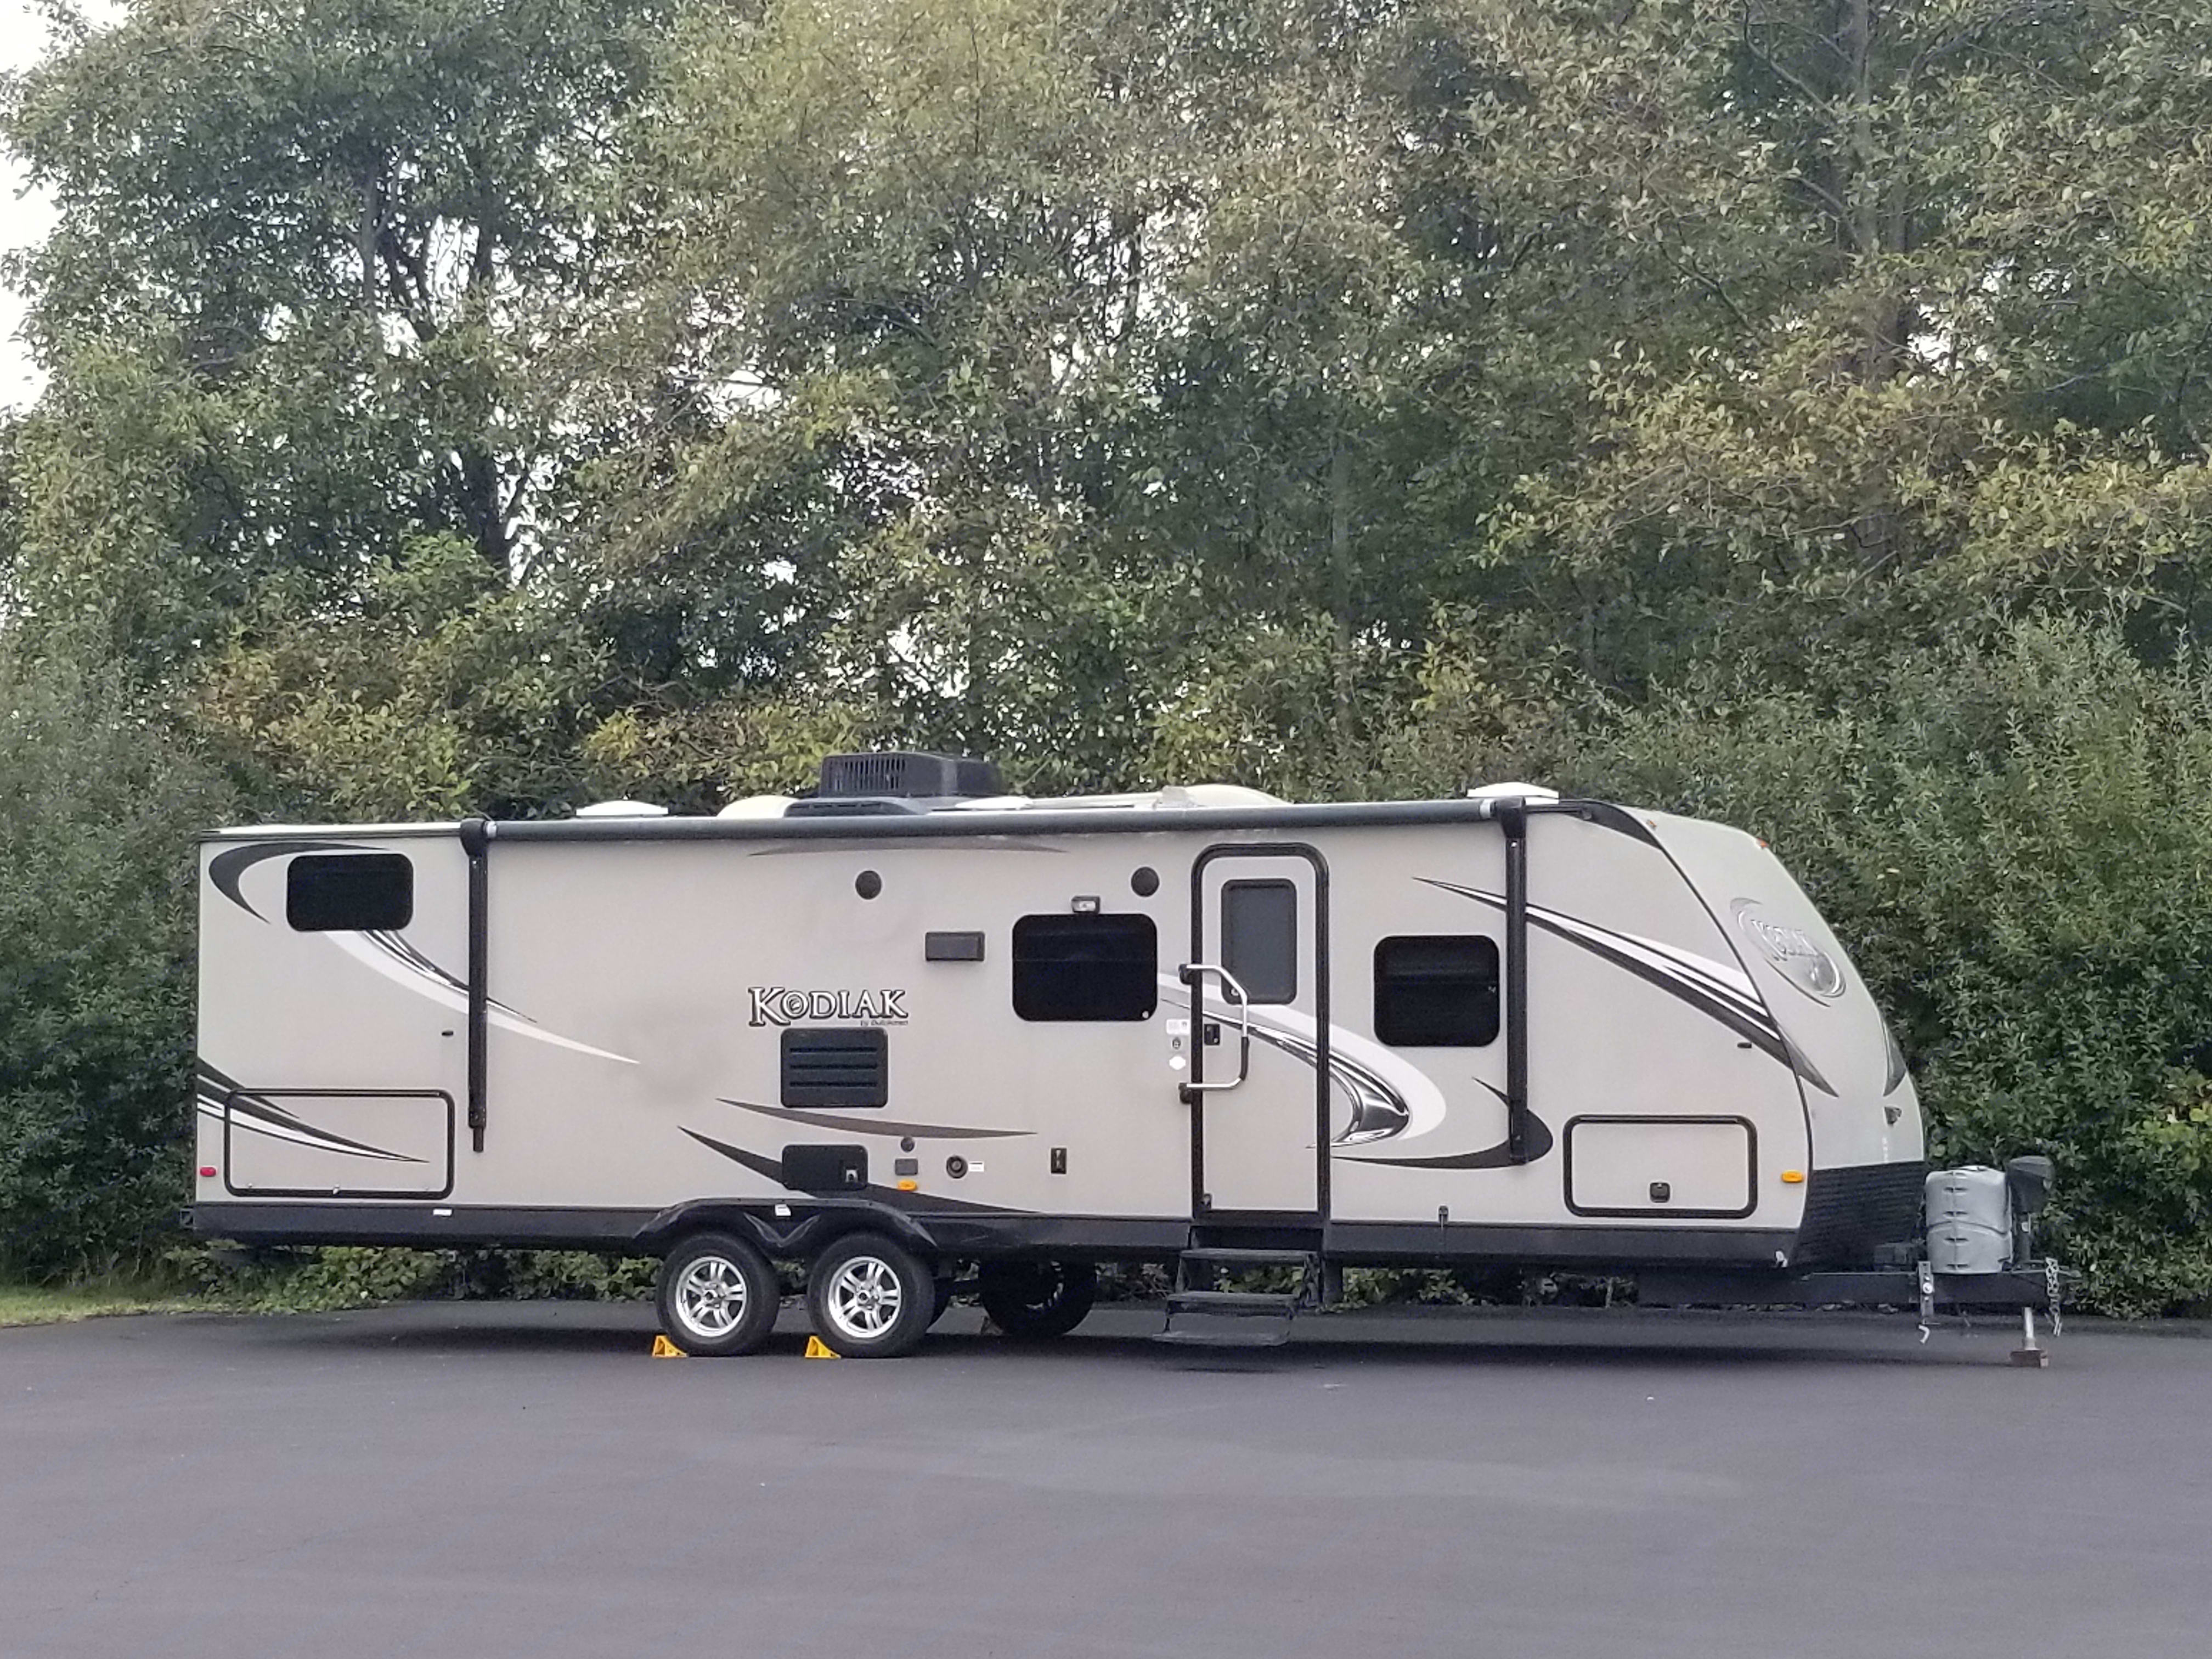 2012 Kodiak 29bkhs travel trailer by Dutchmen. Entry with outdoor awning, outdoor kitchen, outdoor stereo speakers and TV hook up. Front storage entire width of the camper.. Coachmen Kodiak 2012